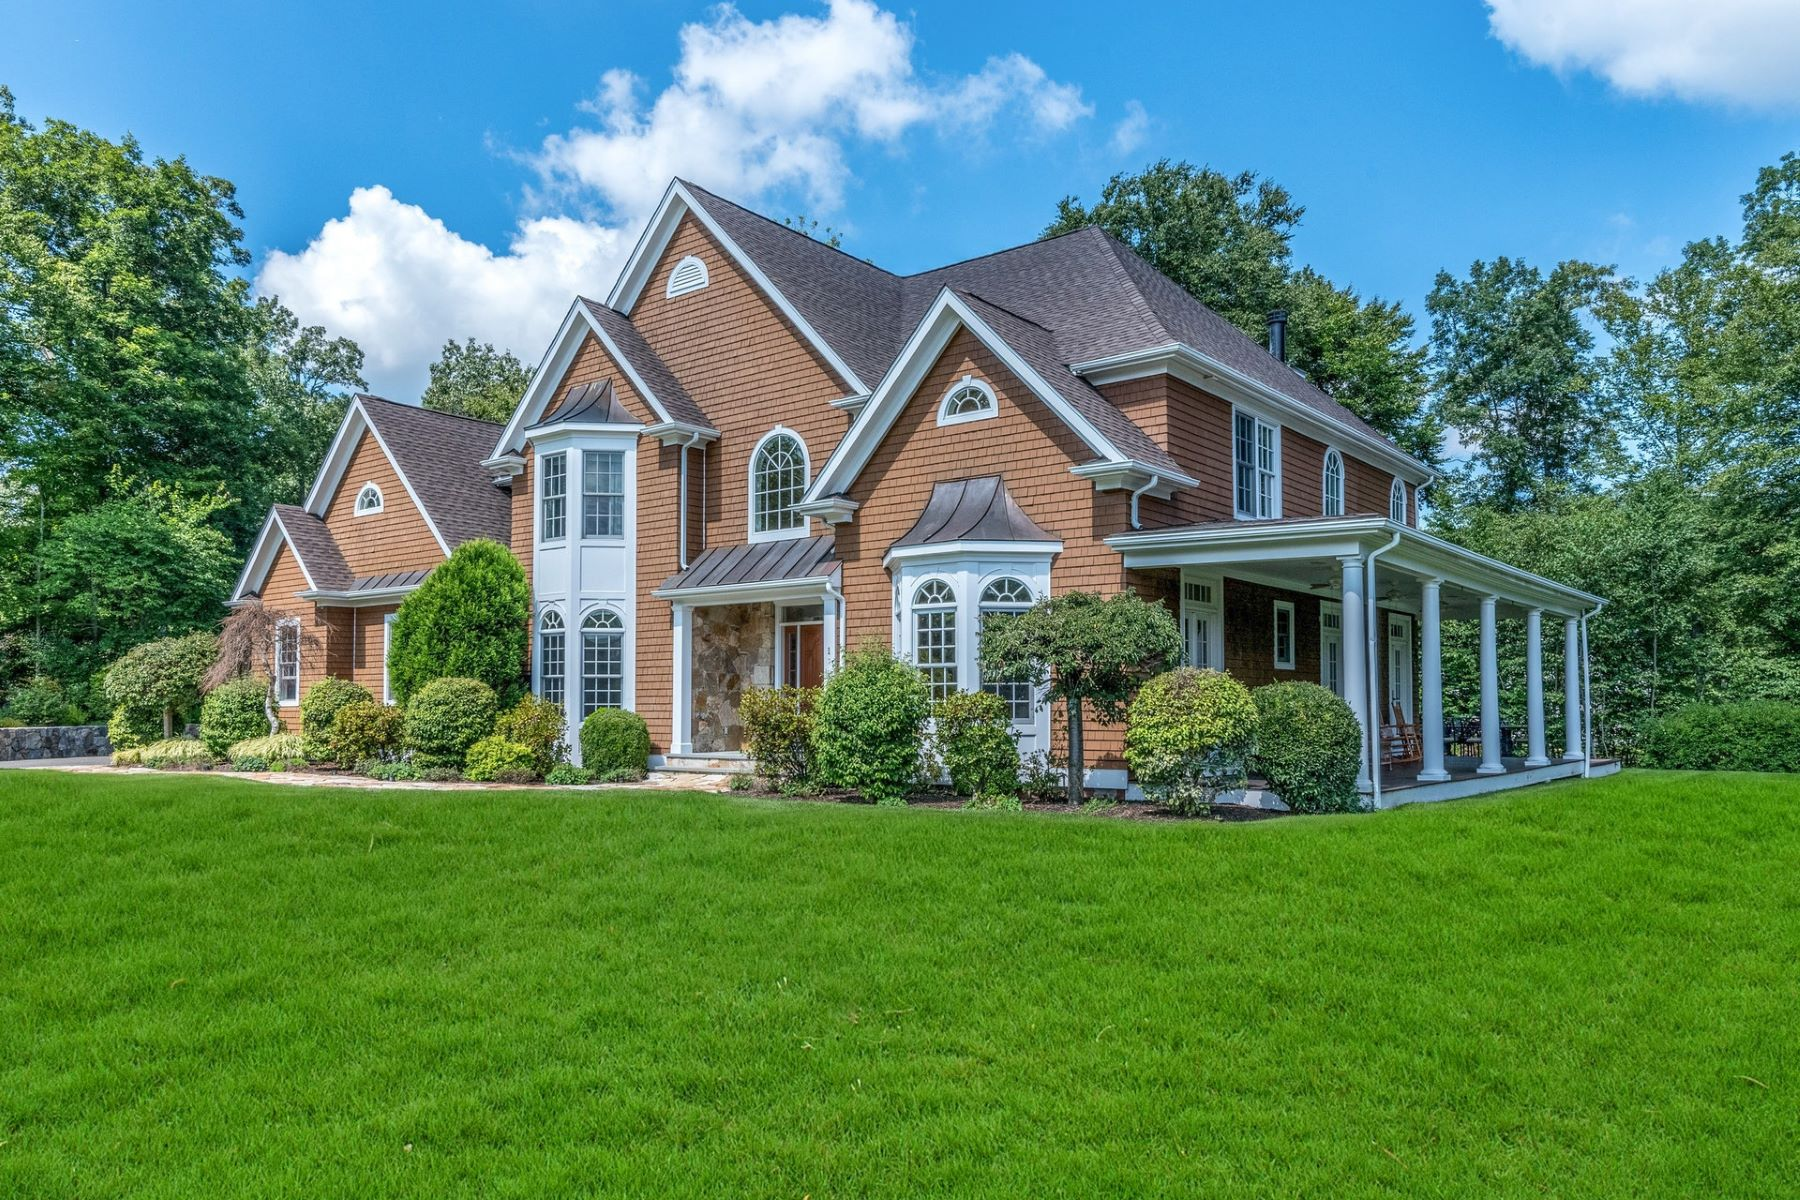 Single Family Home for Sale at Uncompromising Quality & Craftsmanship 1 Darcangelo Drive Brookfield, Connecticut 06804 United States